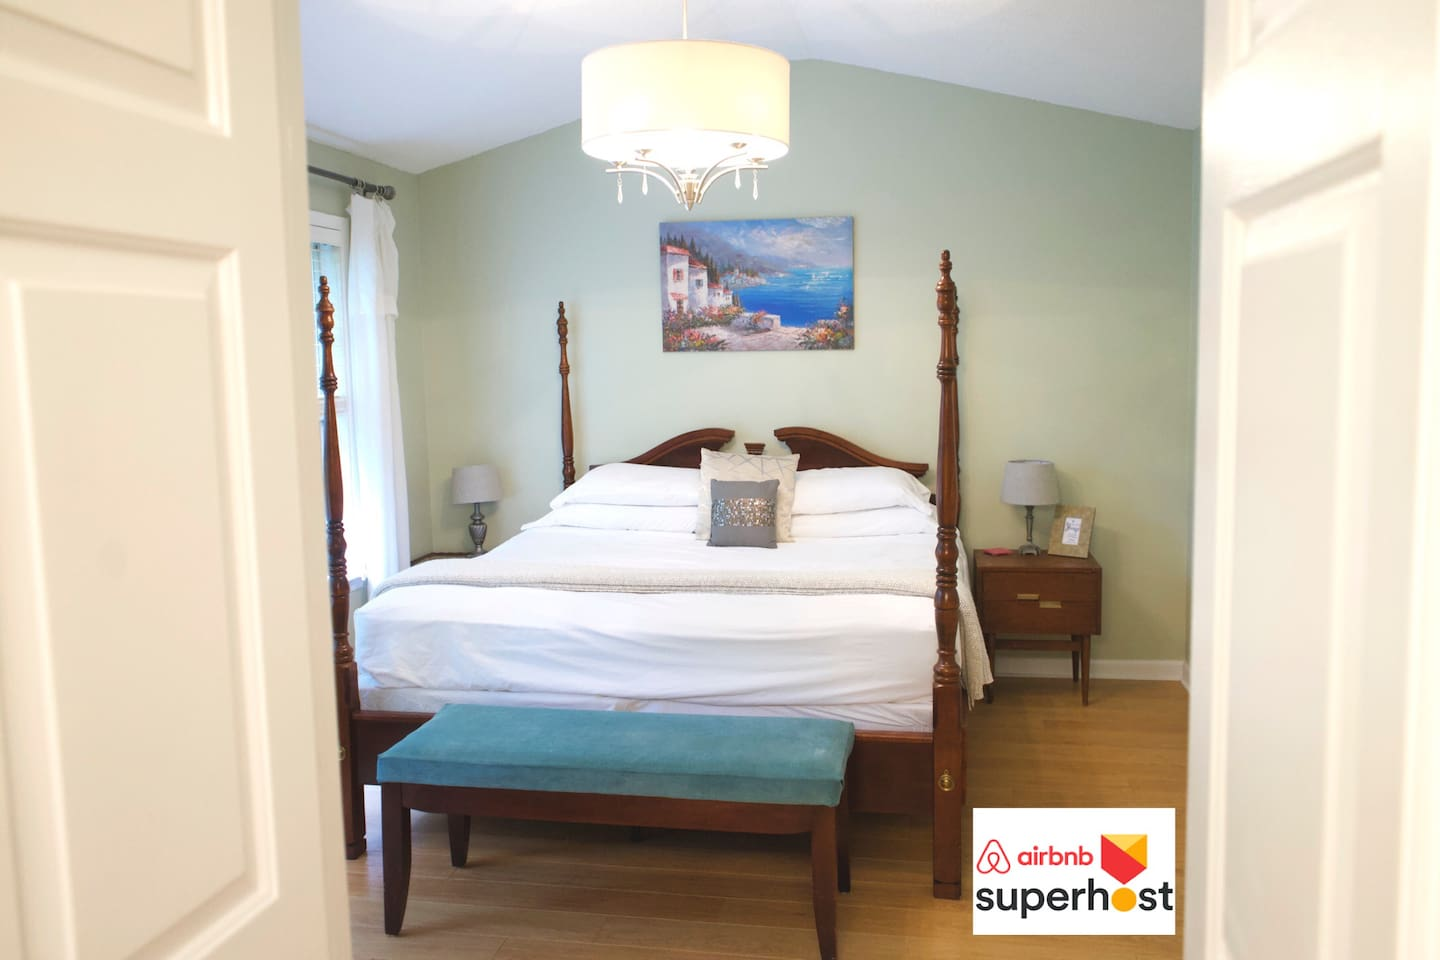 Guest suite 4-post, king size bed guarantees a good night's rest